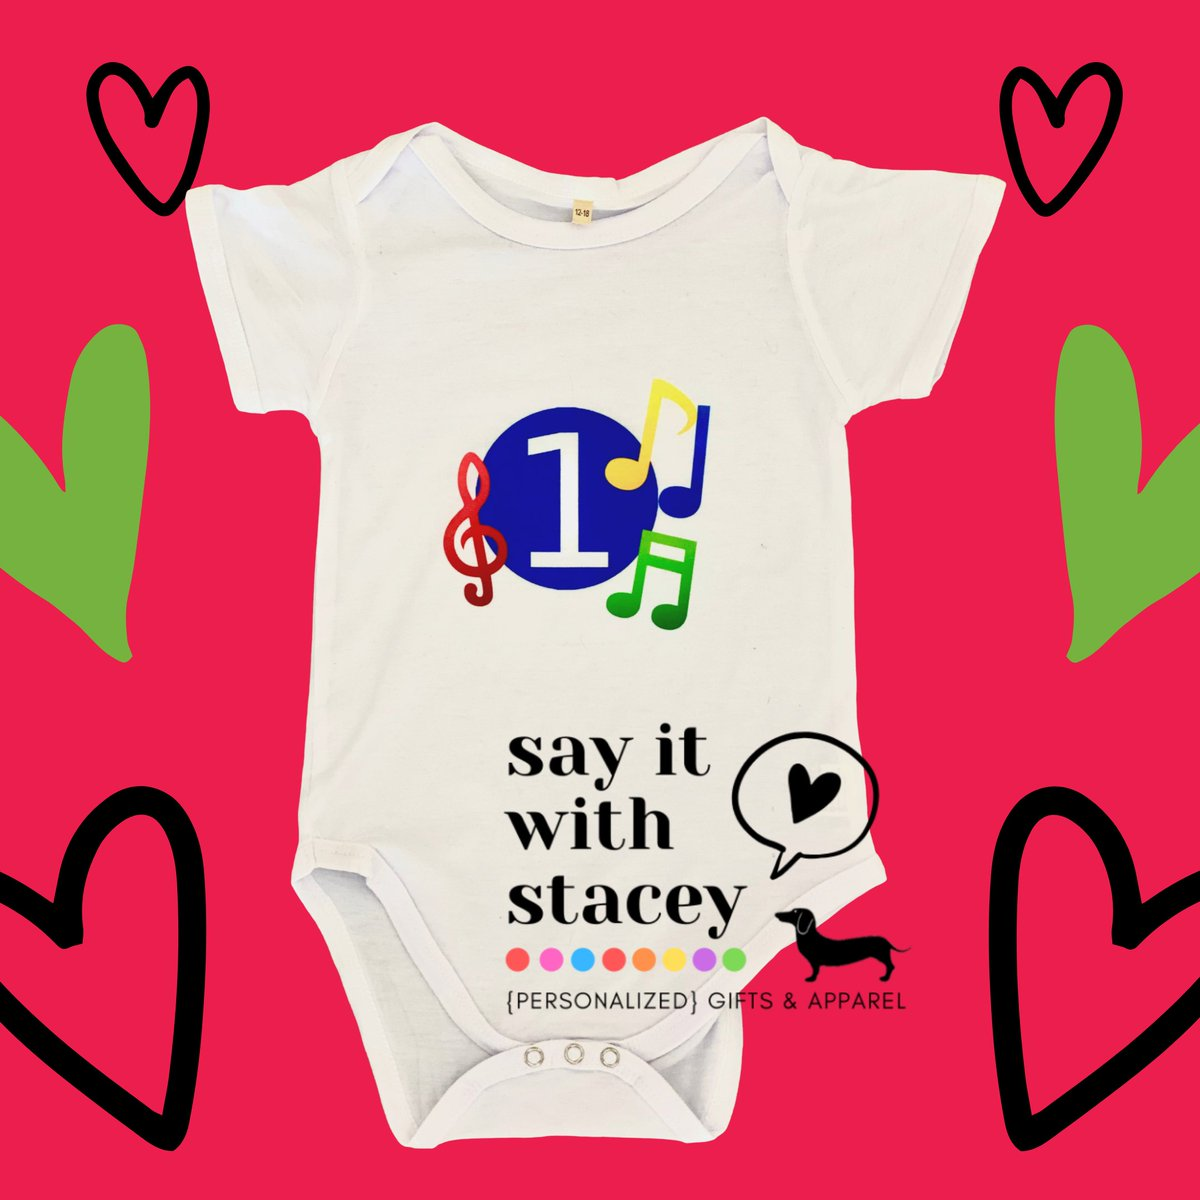 Everybody clap your hands  👏This little guy has a music themed #1styearbirthday party tomorrow! #👉❤️🎁🎊🎉#customonesie #memorablegifts #perfectgift #sayitwithstacey #music #musicthemedbirthday